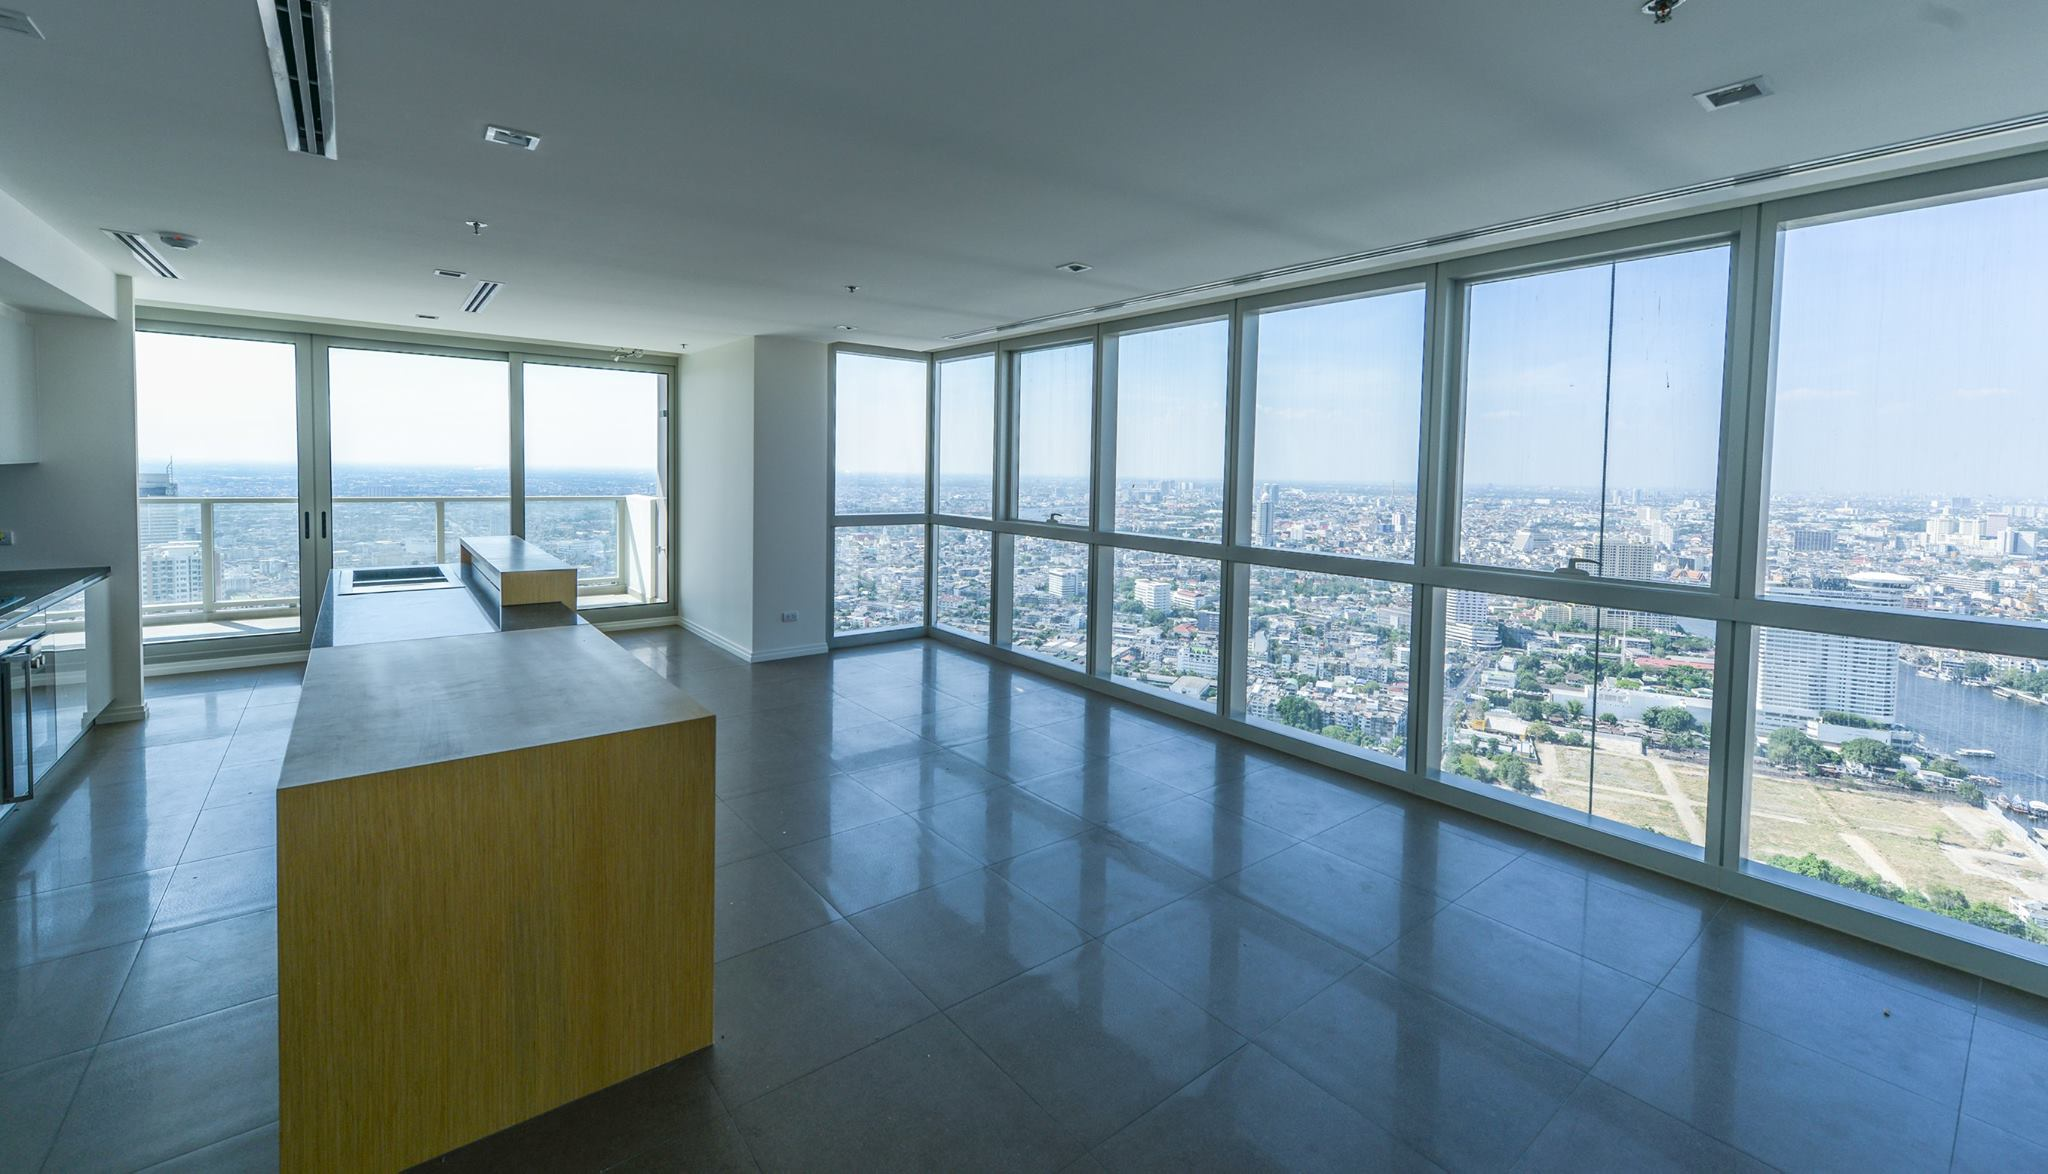 VisionQuest Thailand Property Agency's The River Penthouse 942sq.m spectacular 180 degrees river and city views 6